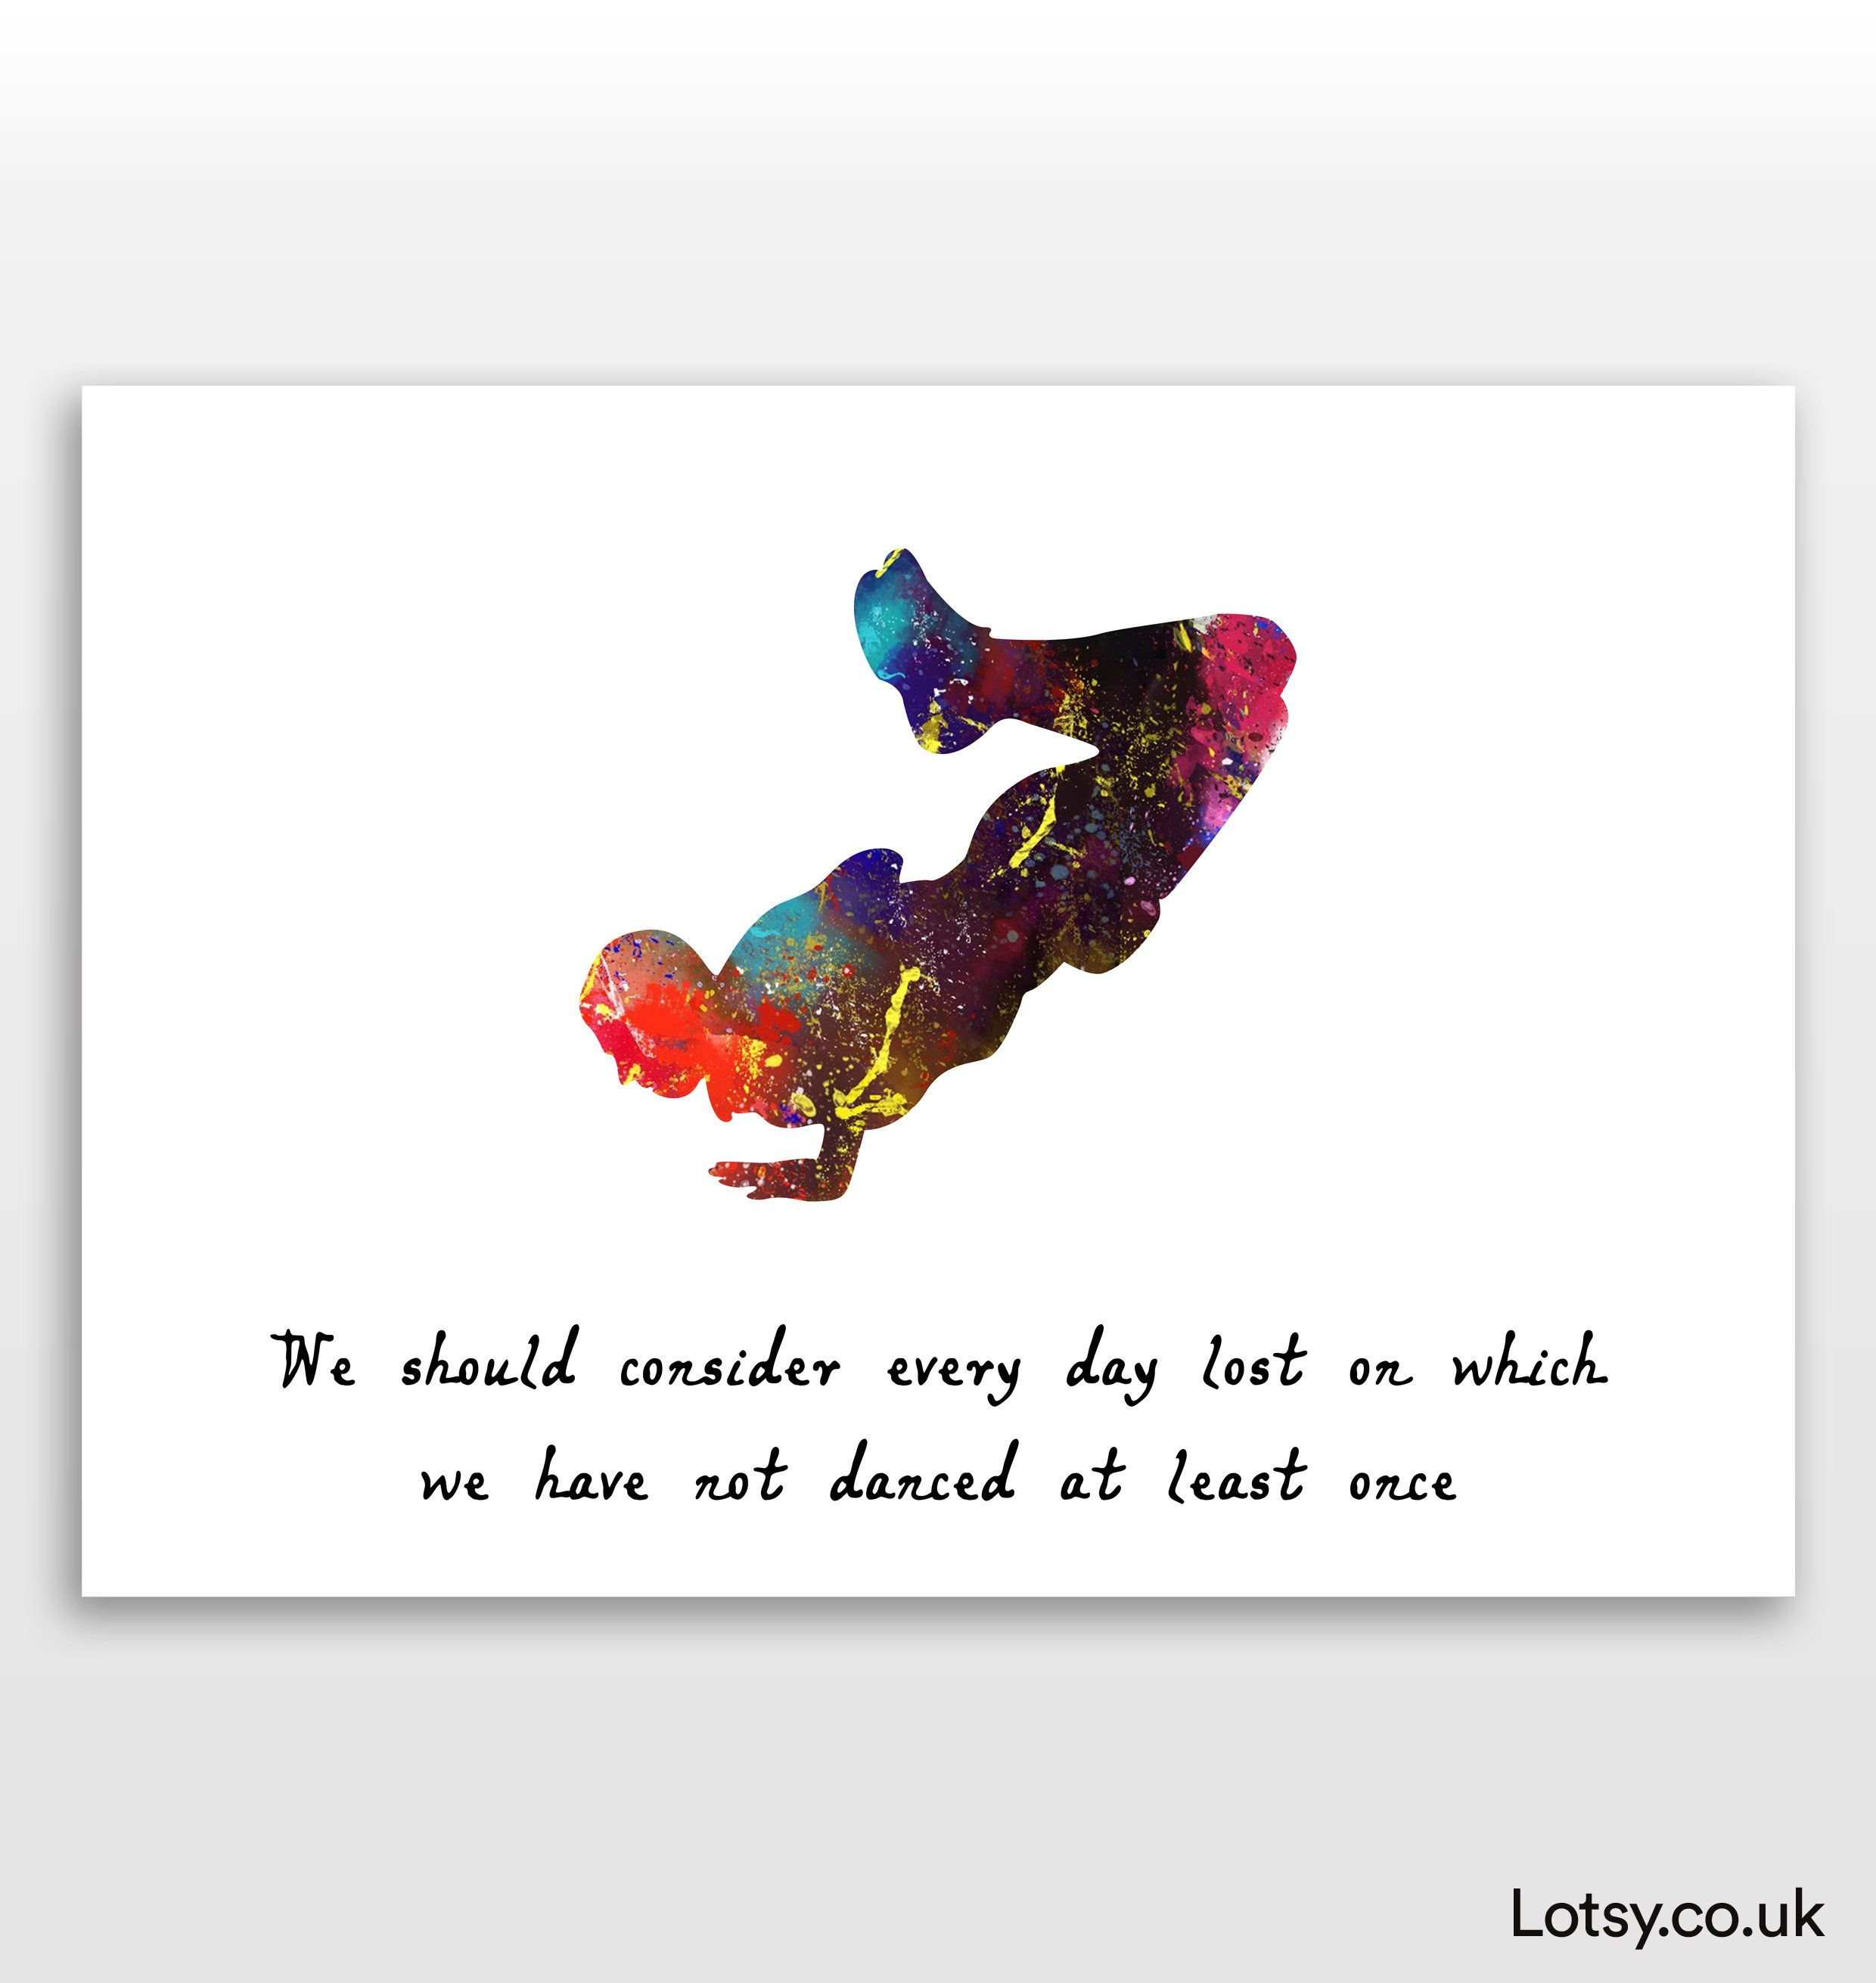 Dancer Quote - We should consider every day lost on which we have not danced at least once - A5 - (148mm x 210mm) (5.8inch x 8.3inch)